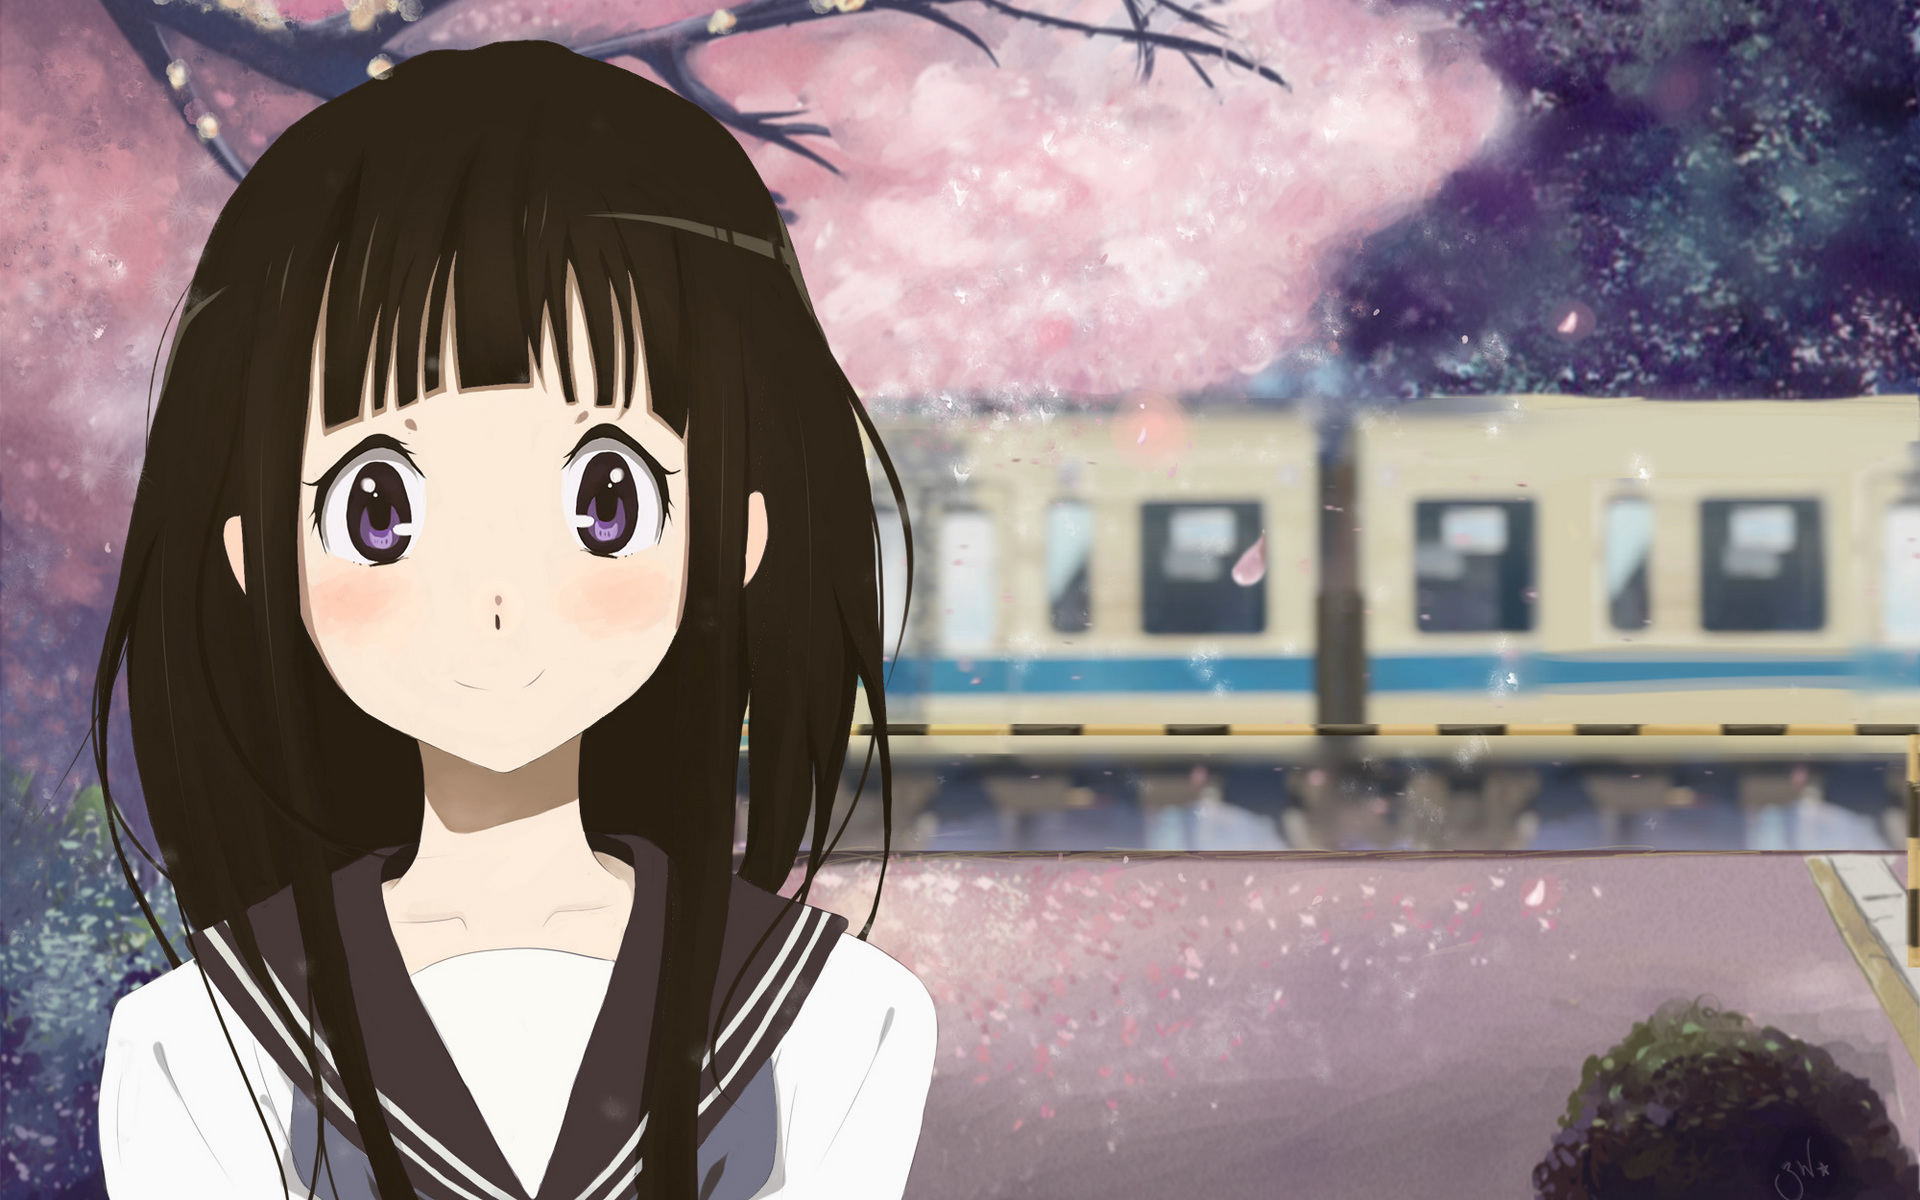 Gun Anime Girl Wallpaper Eru Chitanda 高清壁纸 桌面背景 1920x1200 Id 672882